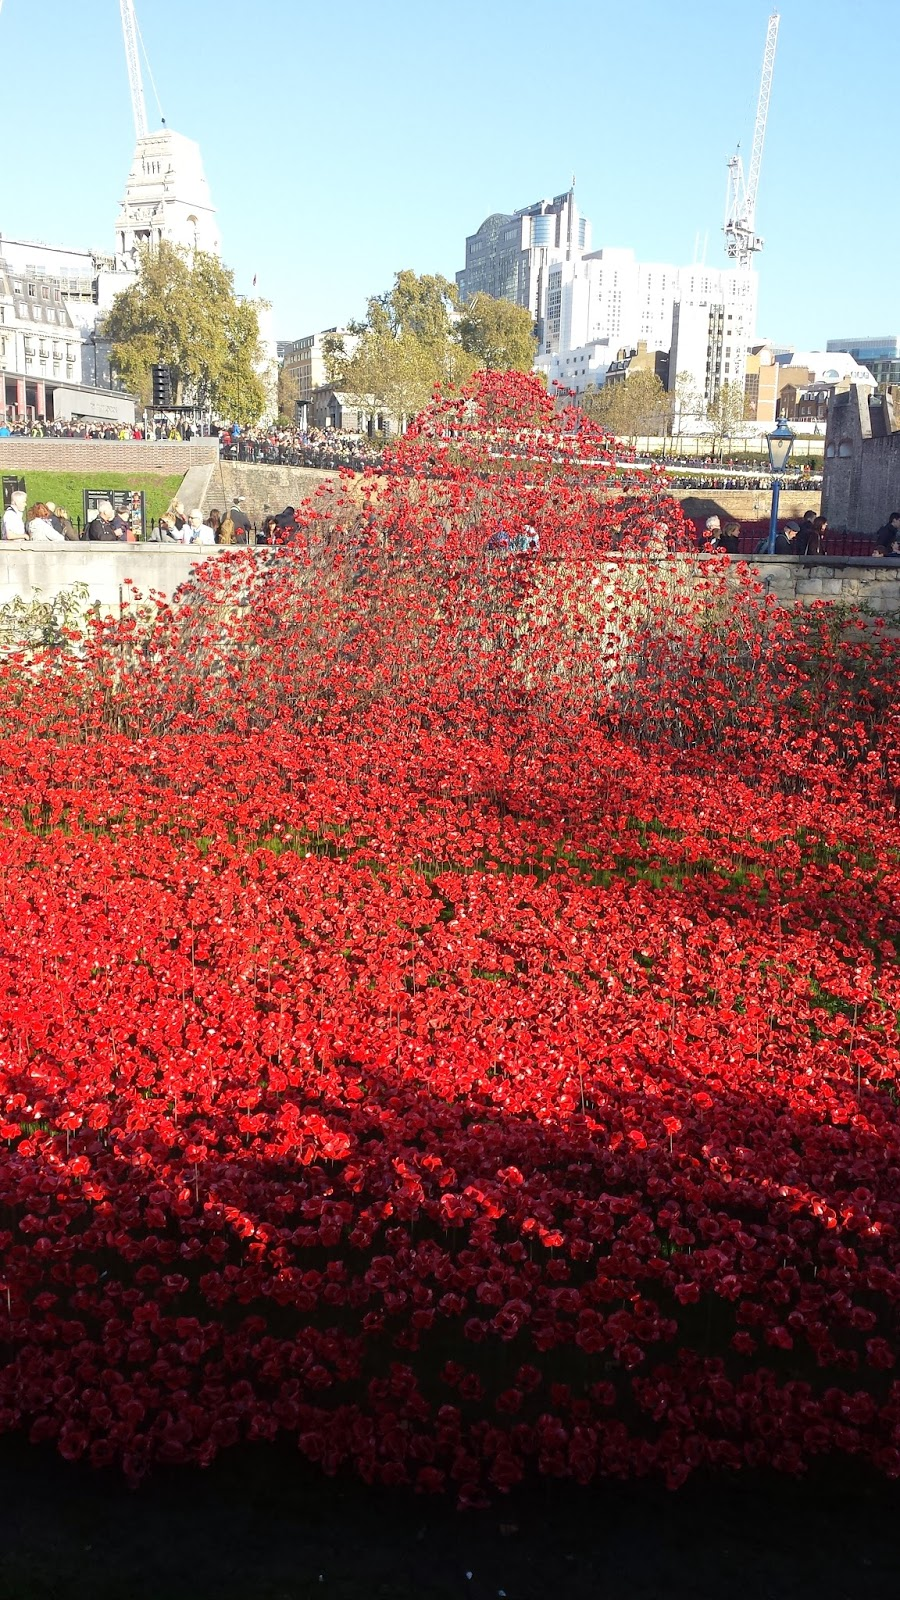 Poppies in London